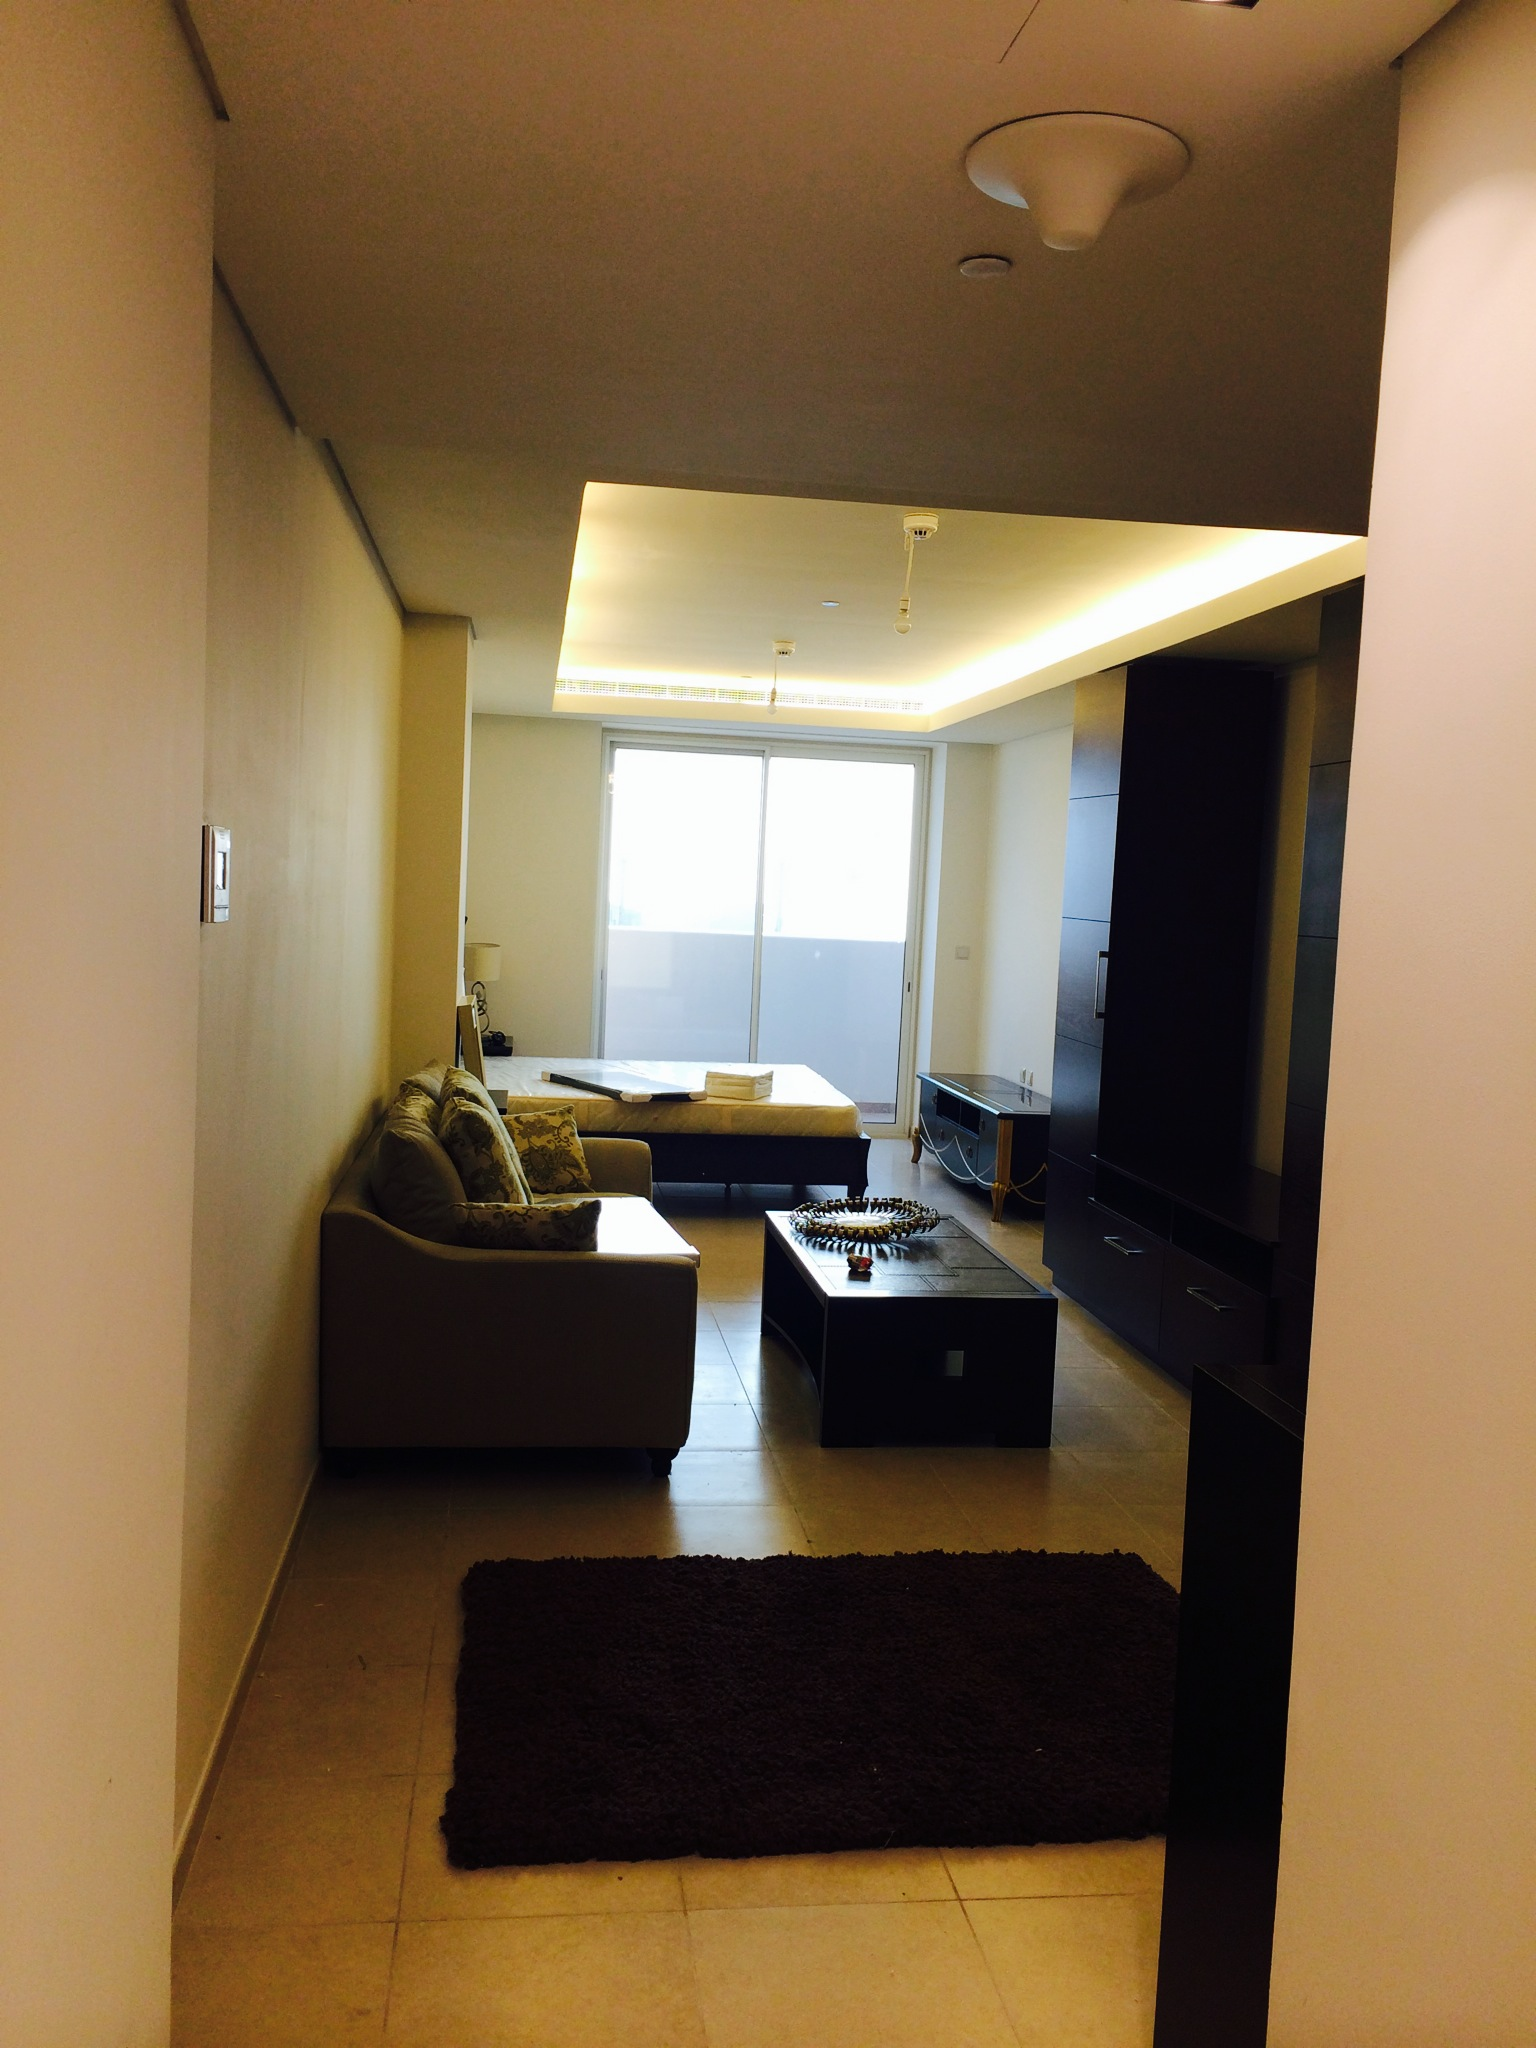 Le Information Luxurious Studio Type Fully Furnished Apartment In The Pearl Qatar For Rent